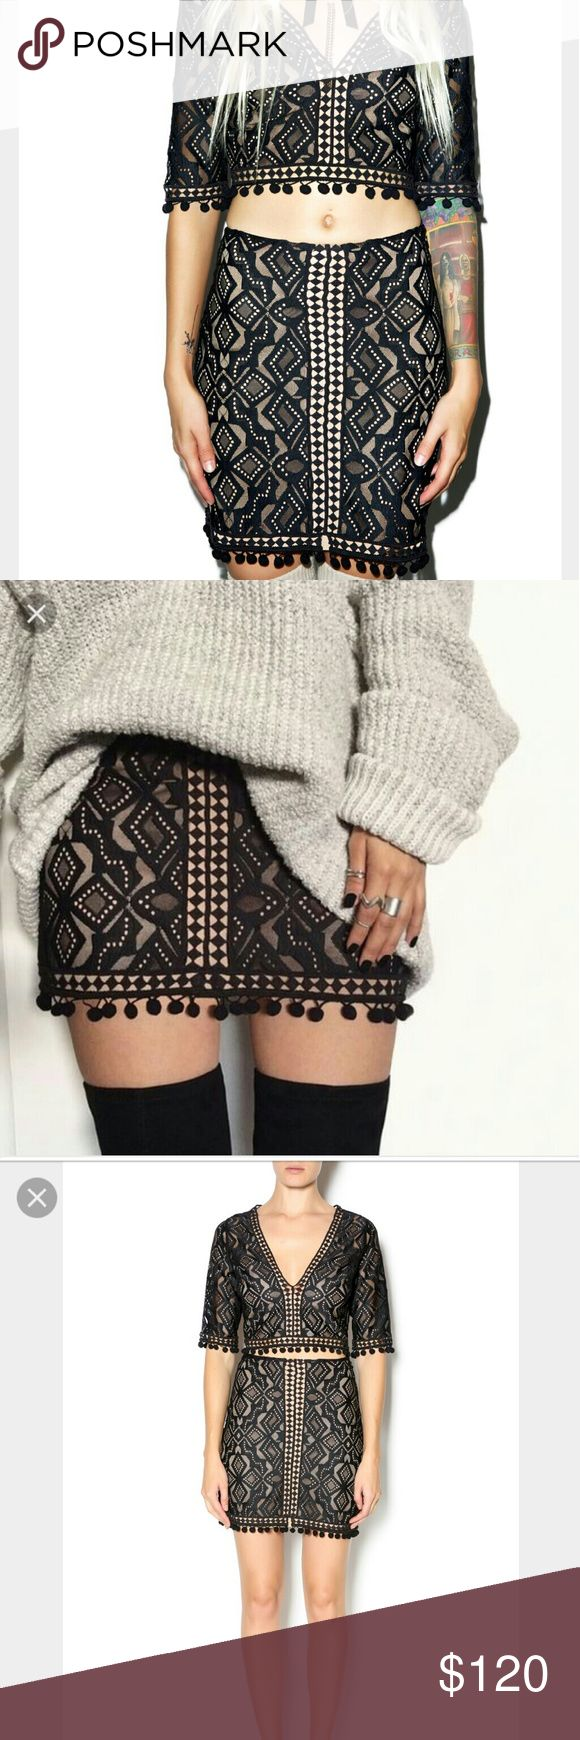 ⚡ FLASH SALE ⚡For Love and Lemons Florence Skirt For Love and Lemons Florence mini skirt with geometric lace and crochet lattice trimming. Polyester blend. 17.75 inches in length. For Love and Lemons Skirts